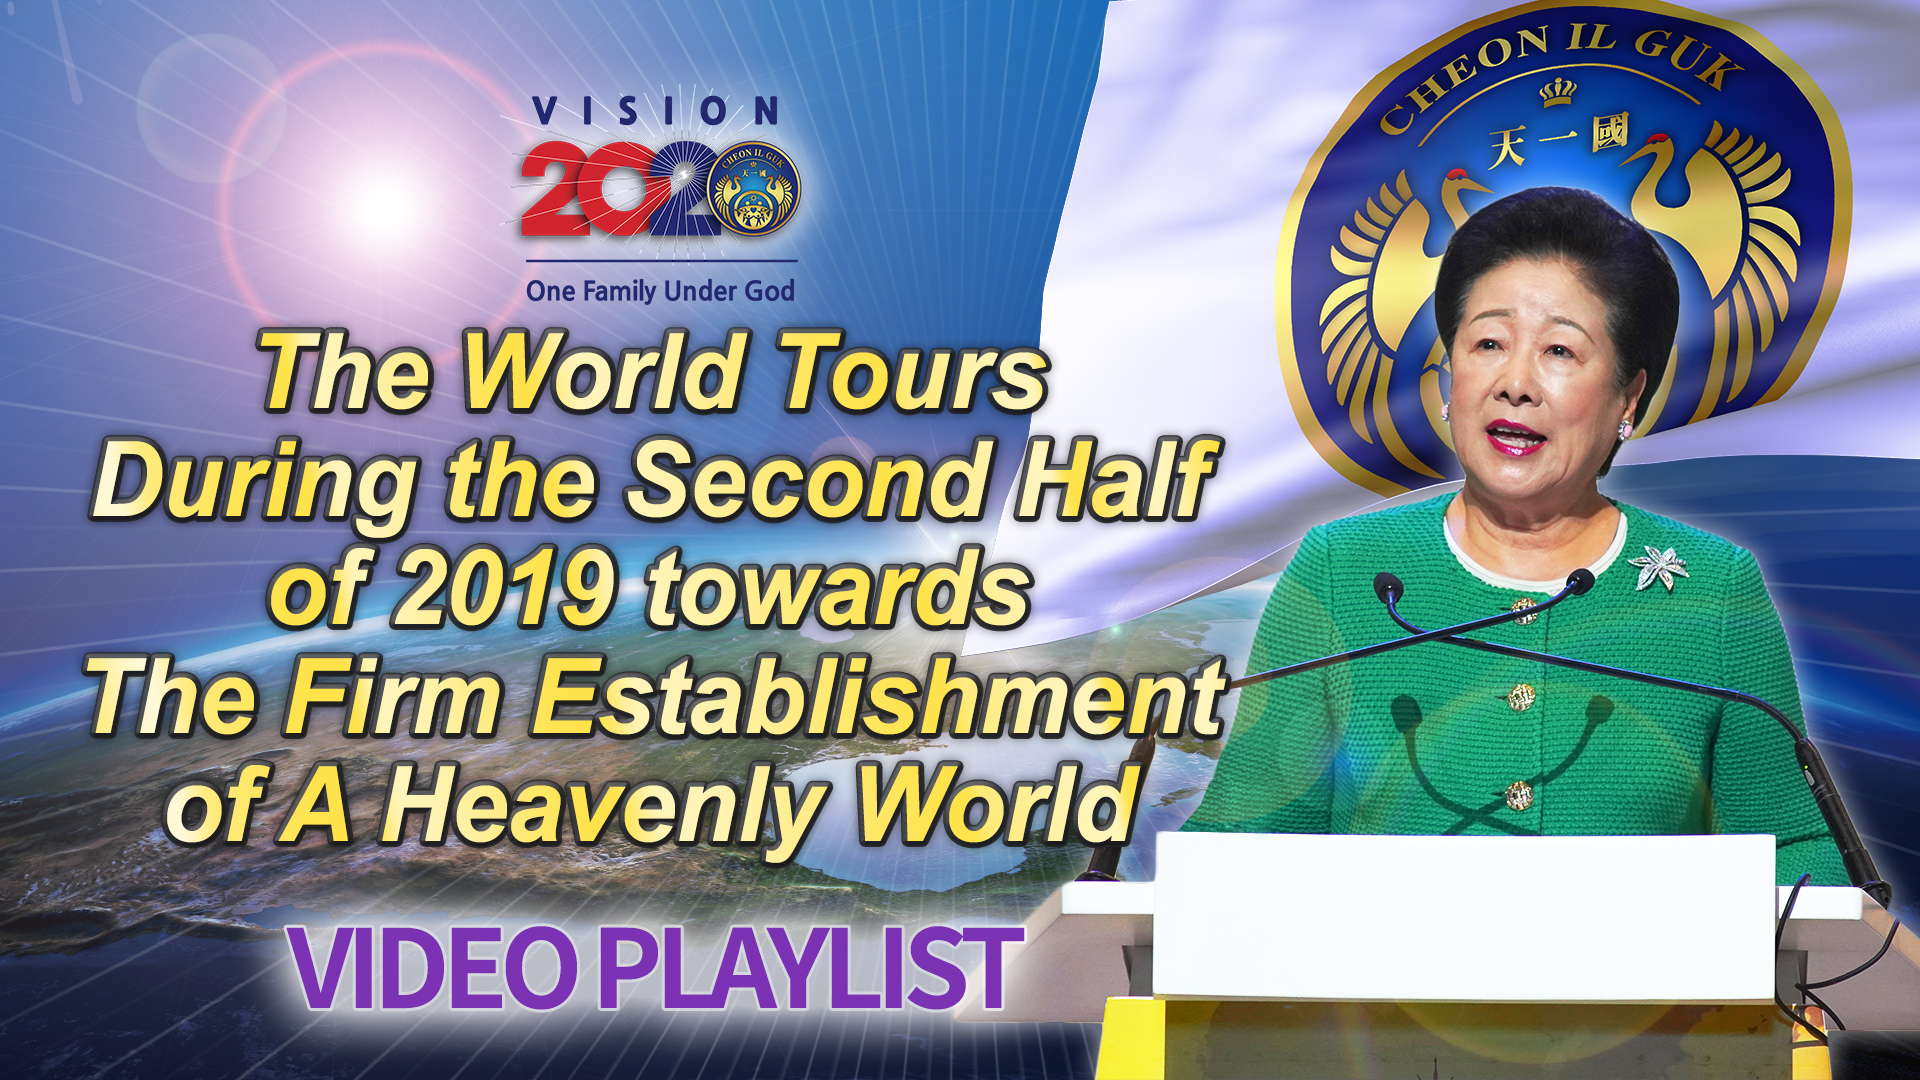 The World Tours During the Second Half of  2019 towards The Firm Establishment of A Heavenly World